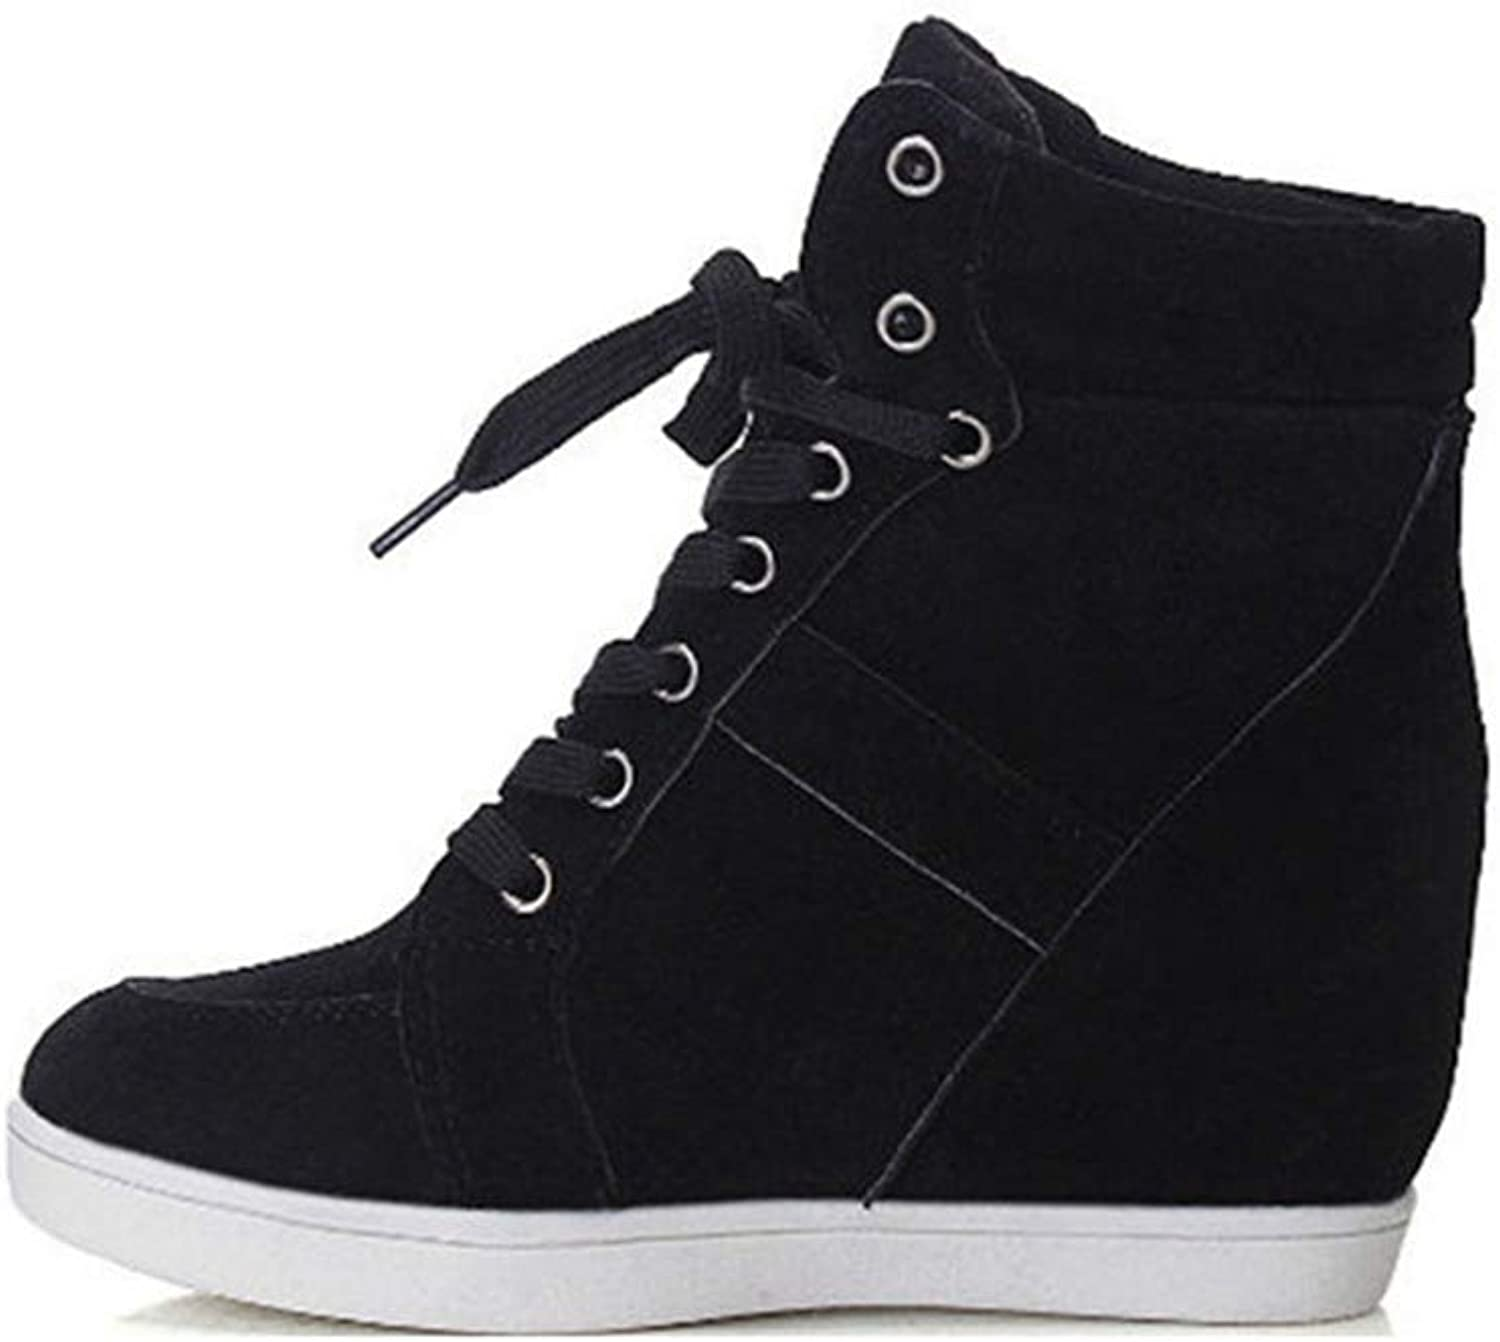 T-JULY Women Height Increasing Platform Sneakers Wedges Casual shoes Woman Lace-up High Top Genuine Suede shoes